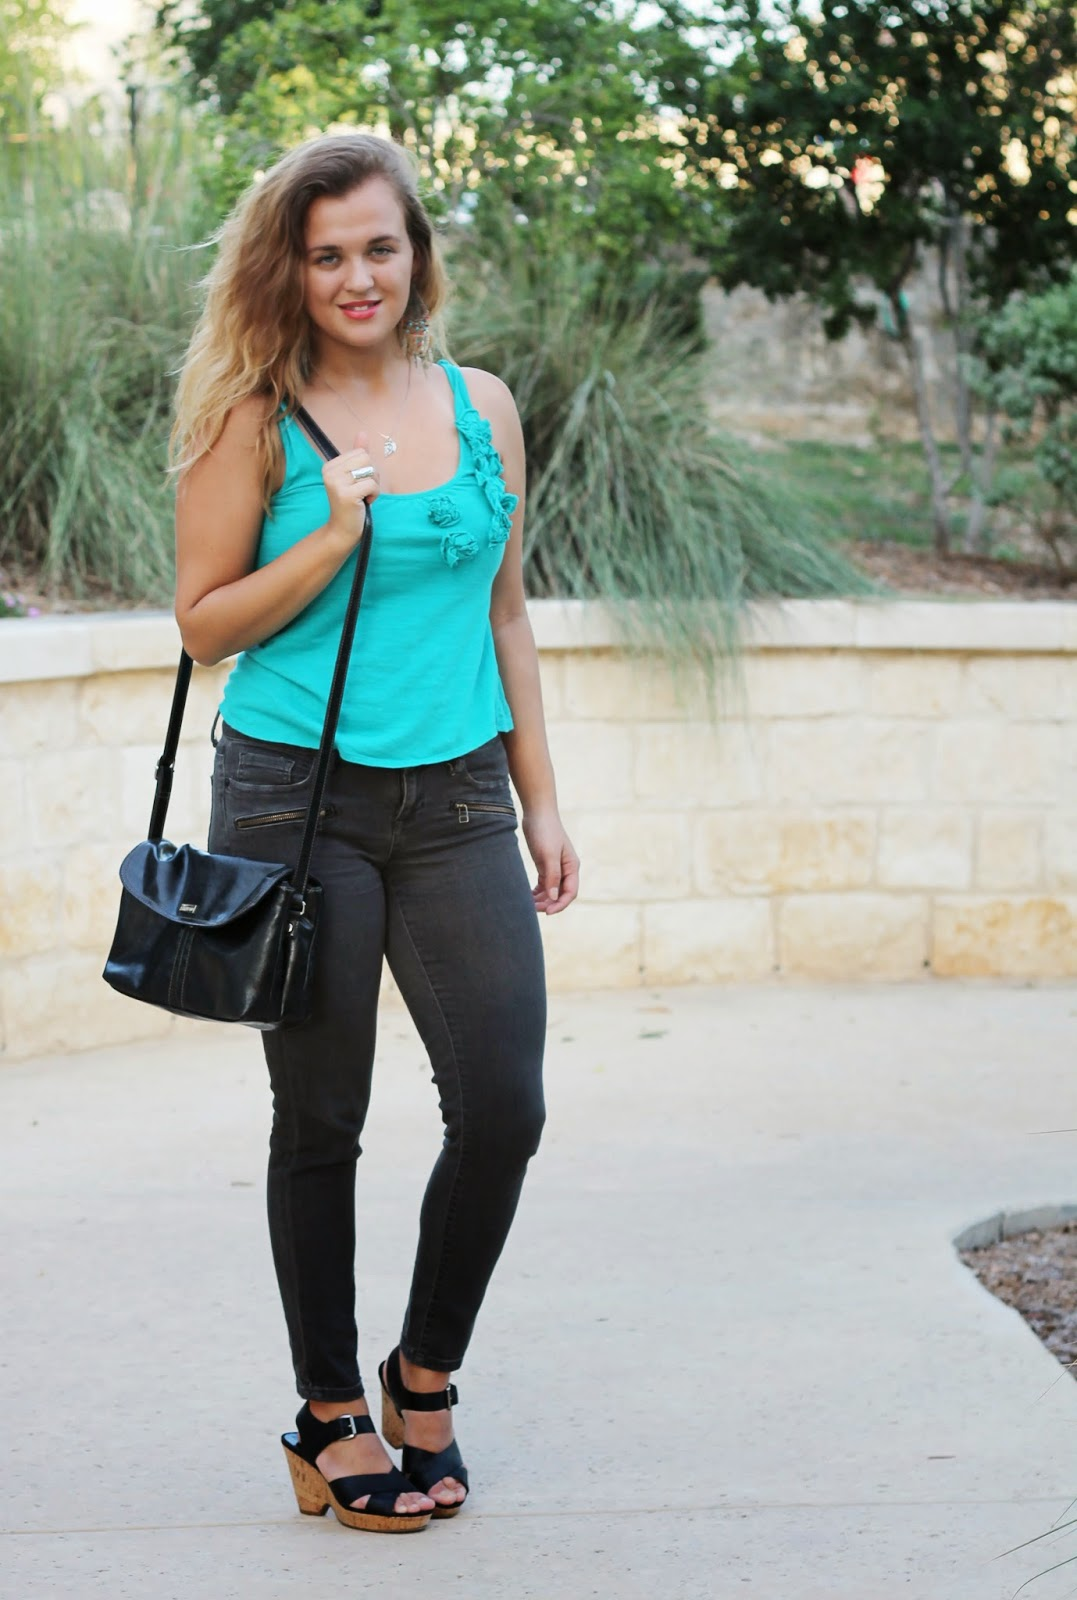 fashion blogger wearing light blue top and skinny jeans